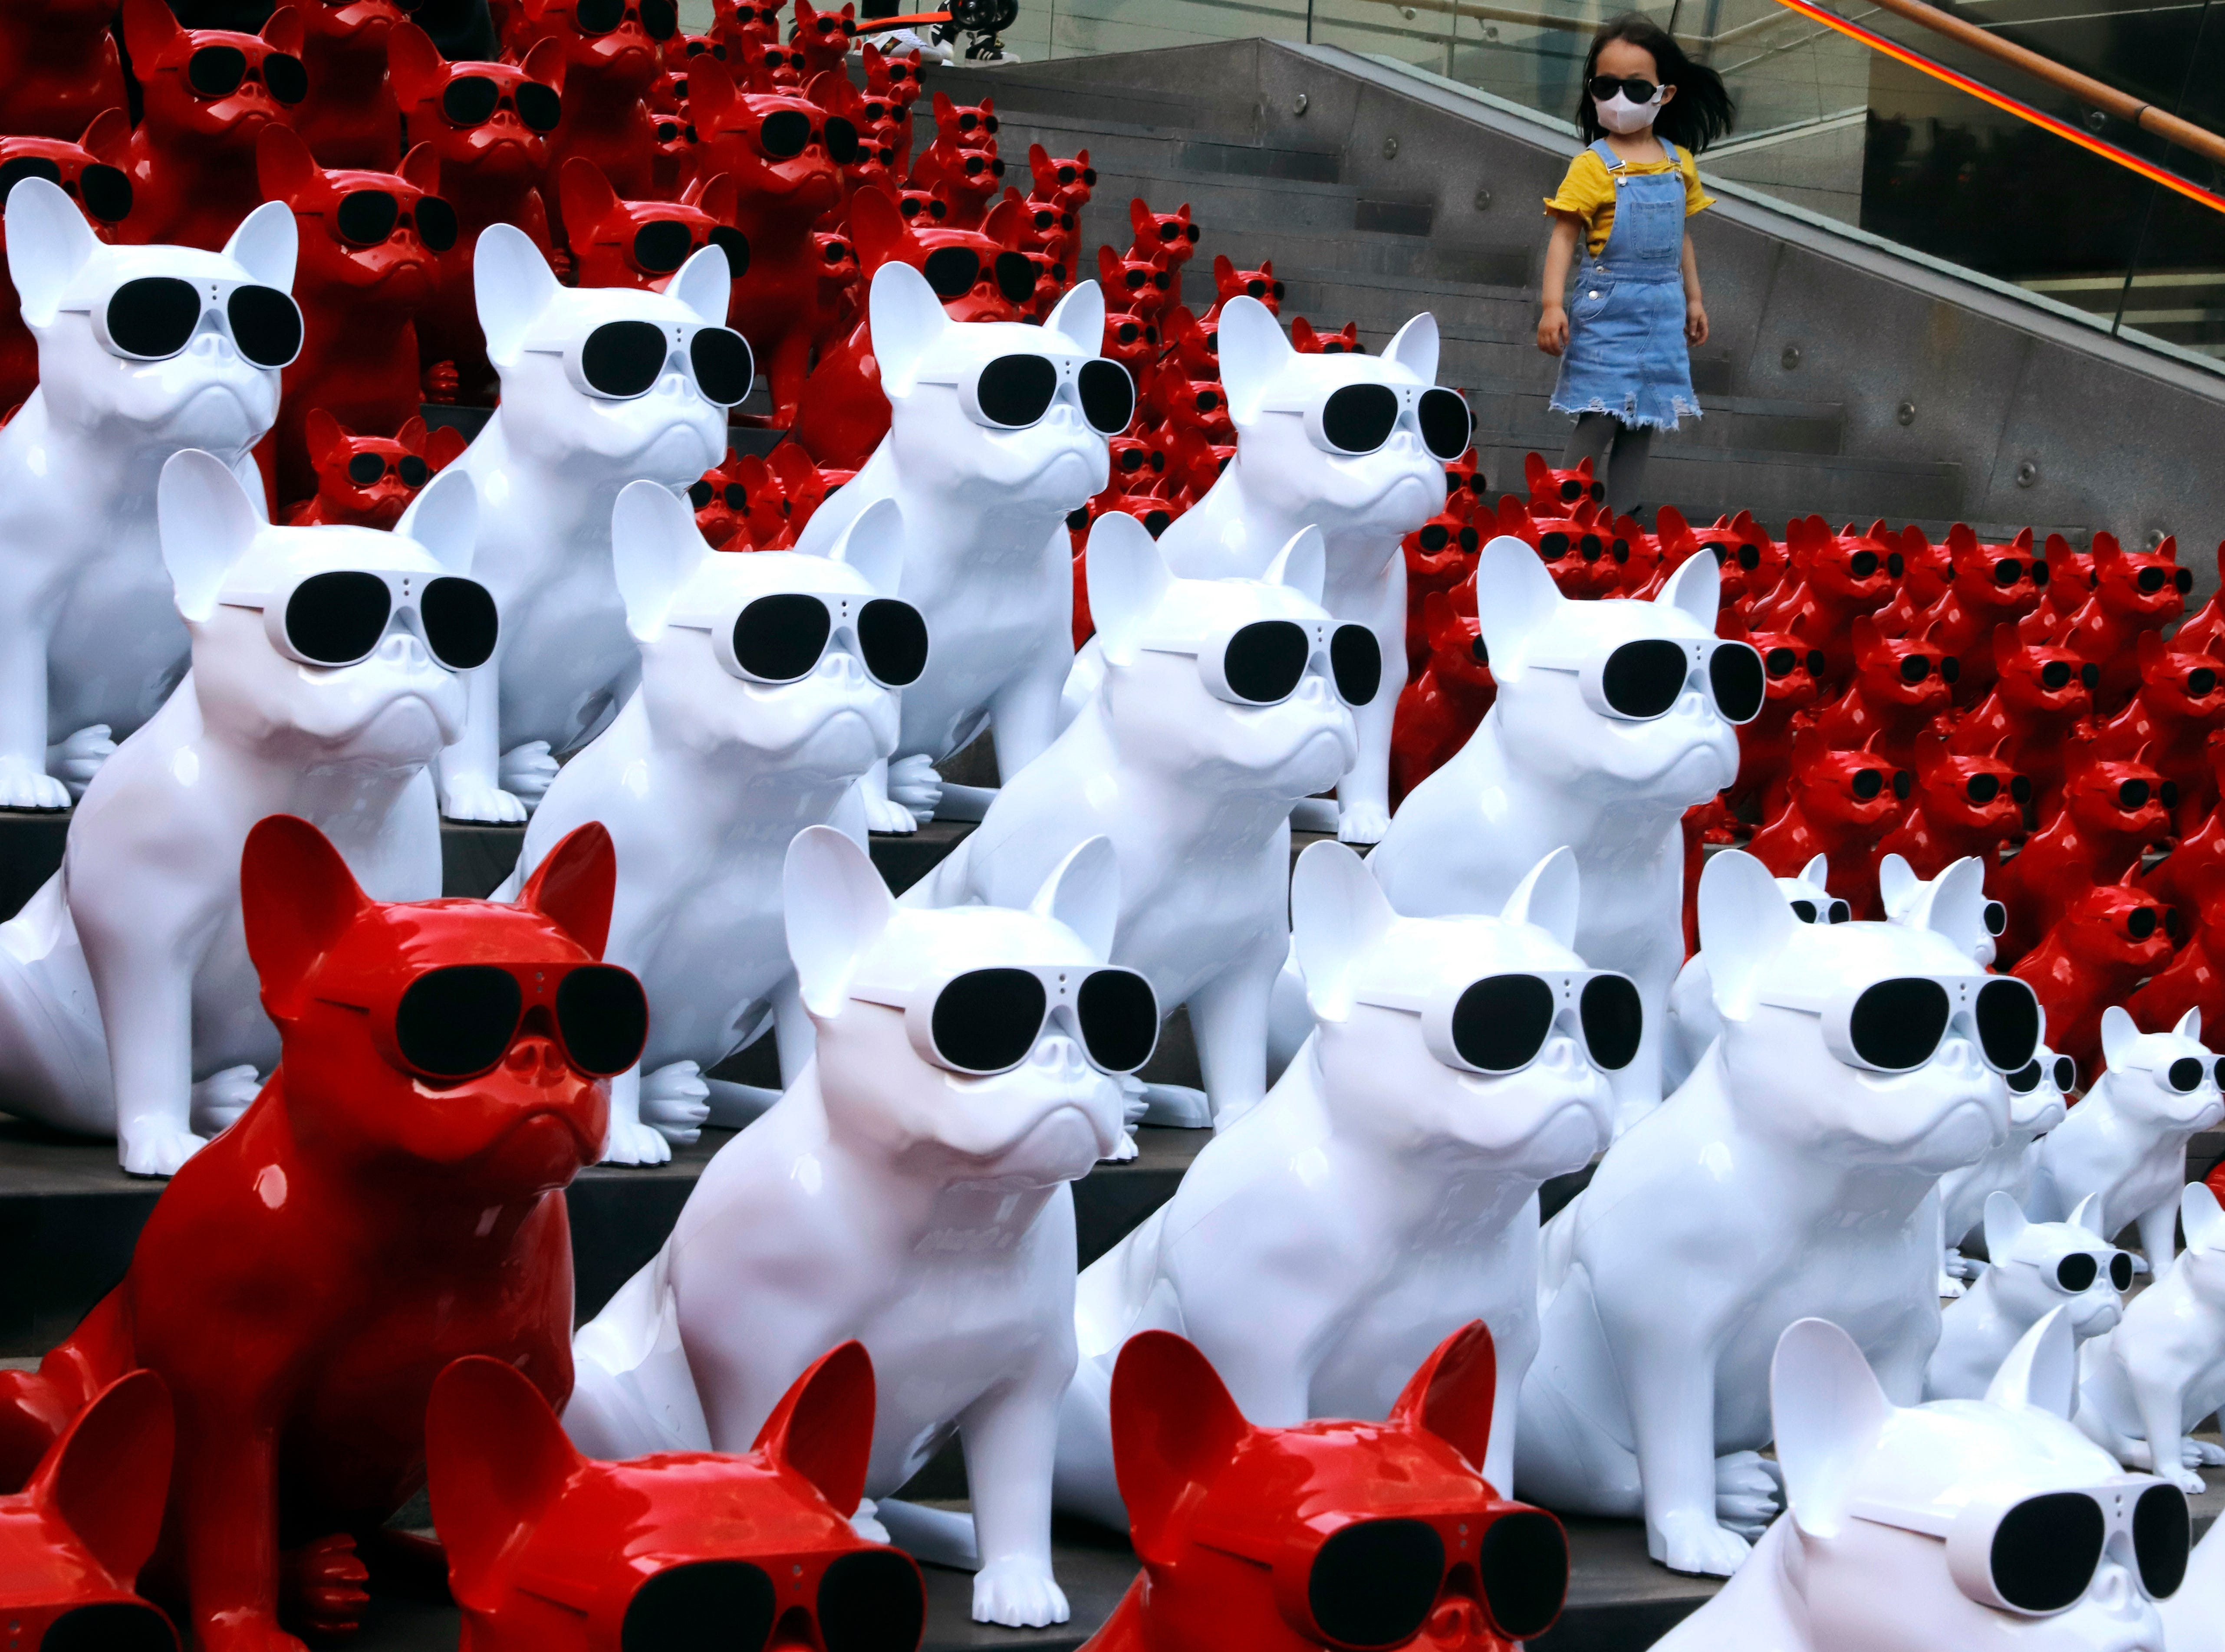 May 3, 2018: A child wearing a mask walks past audio speakers in the shape of dogs displayed at a shopping district in Beijing, China.